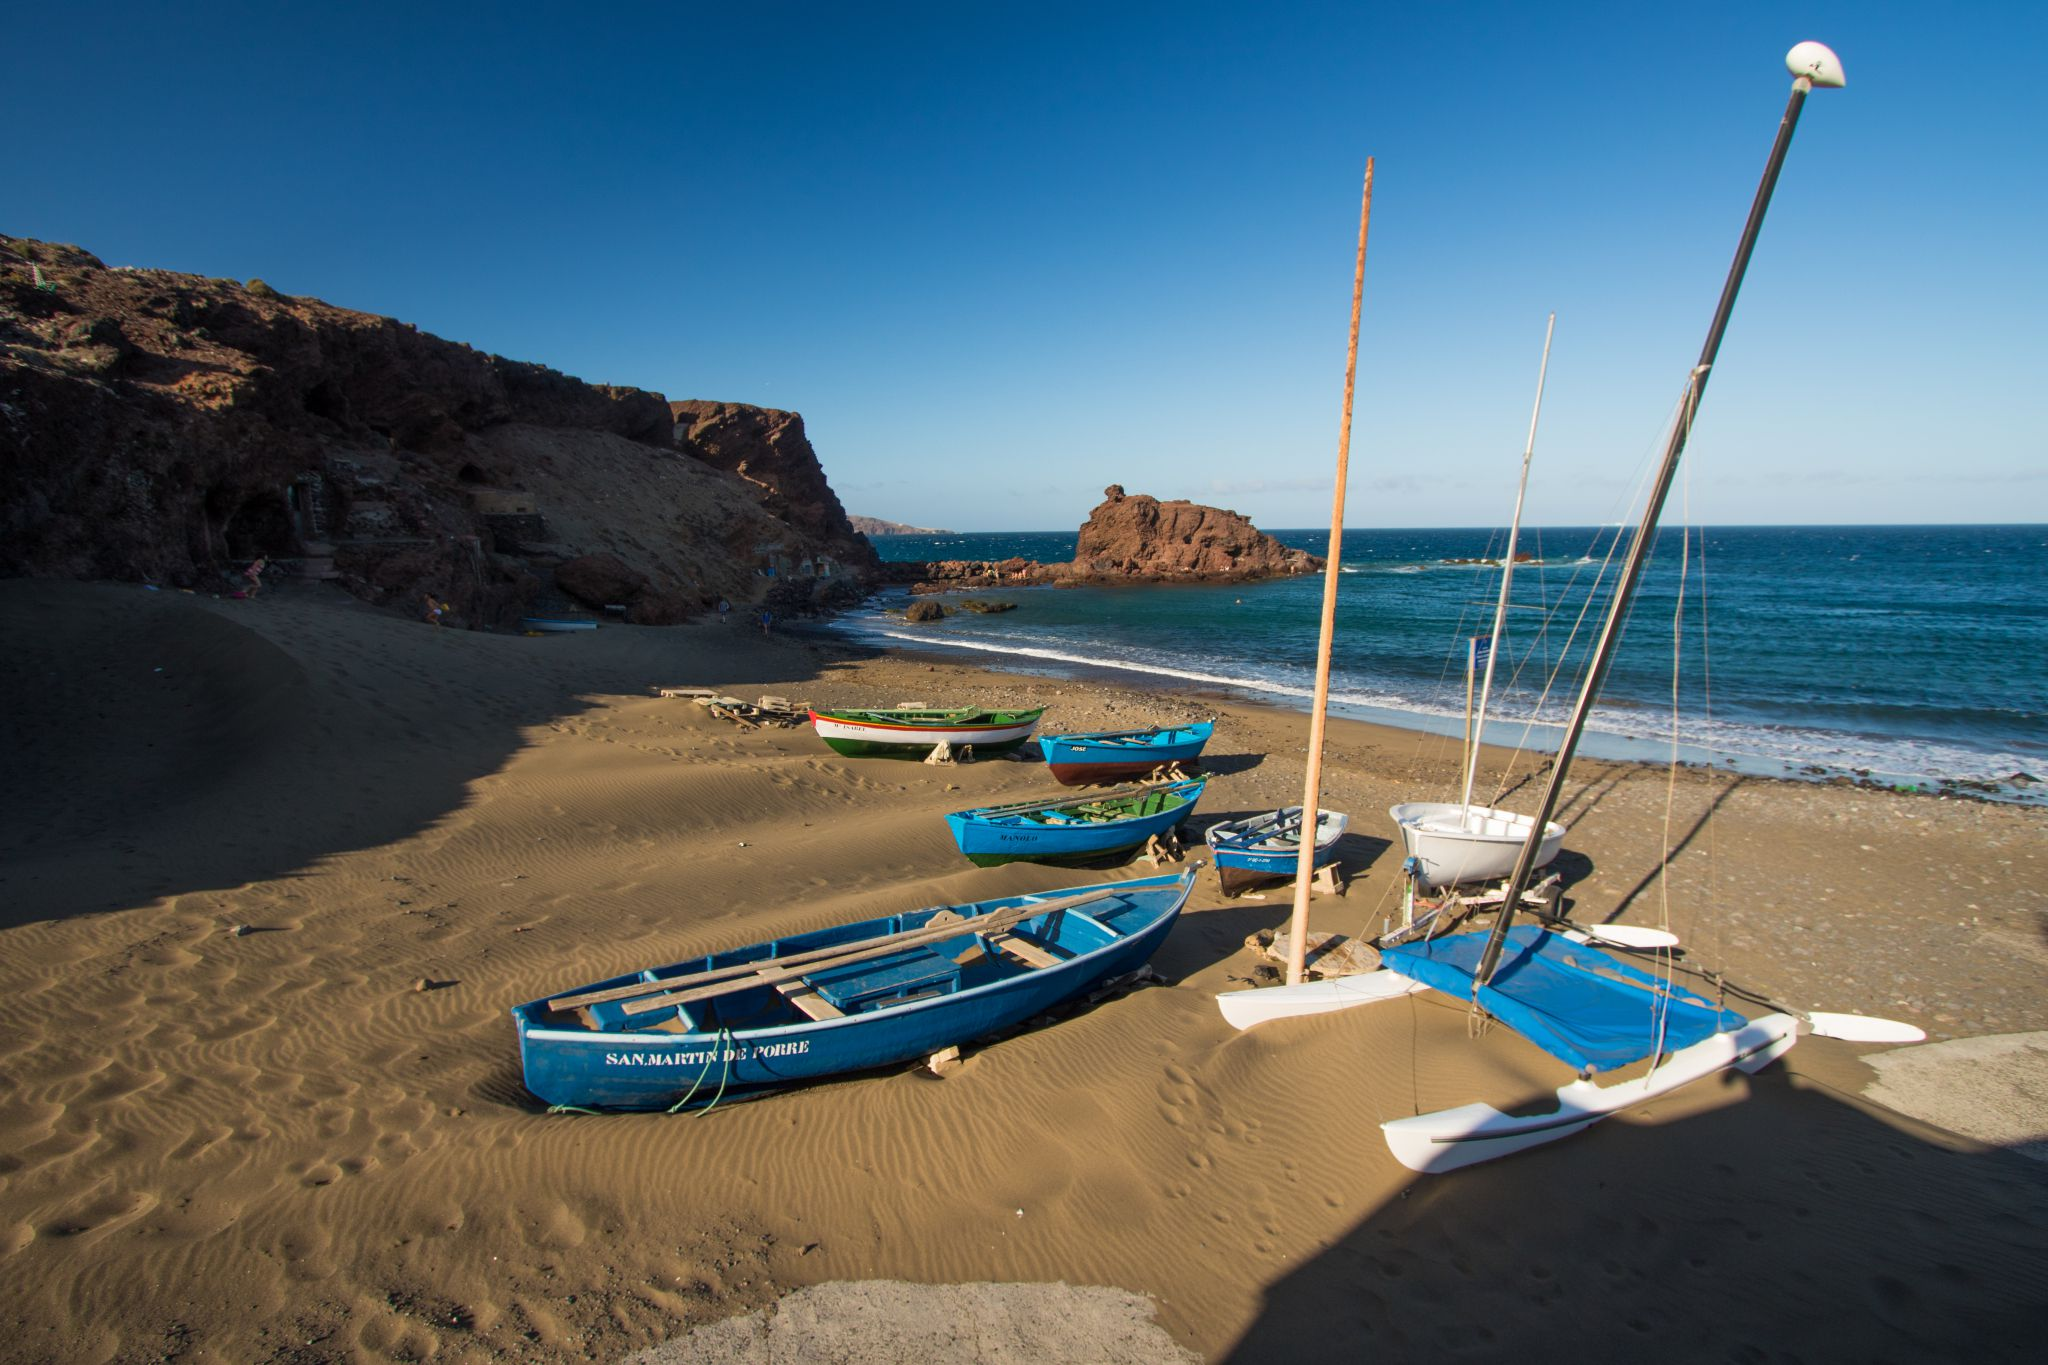 Playa Burrero in east Gran Canaria now has a Blue Flag